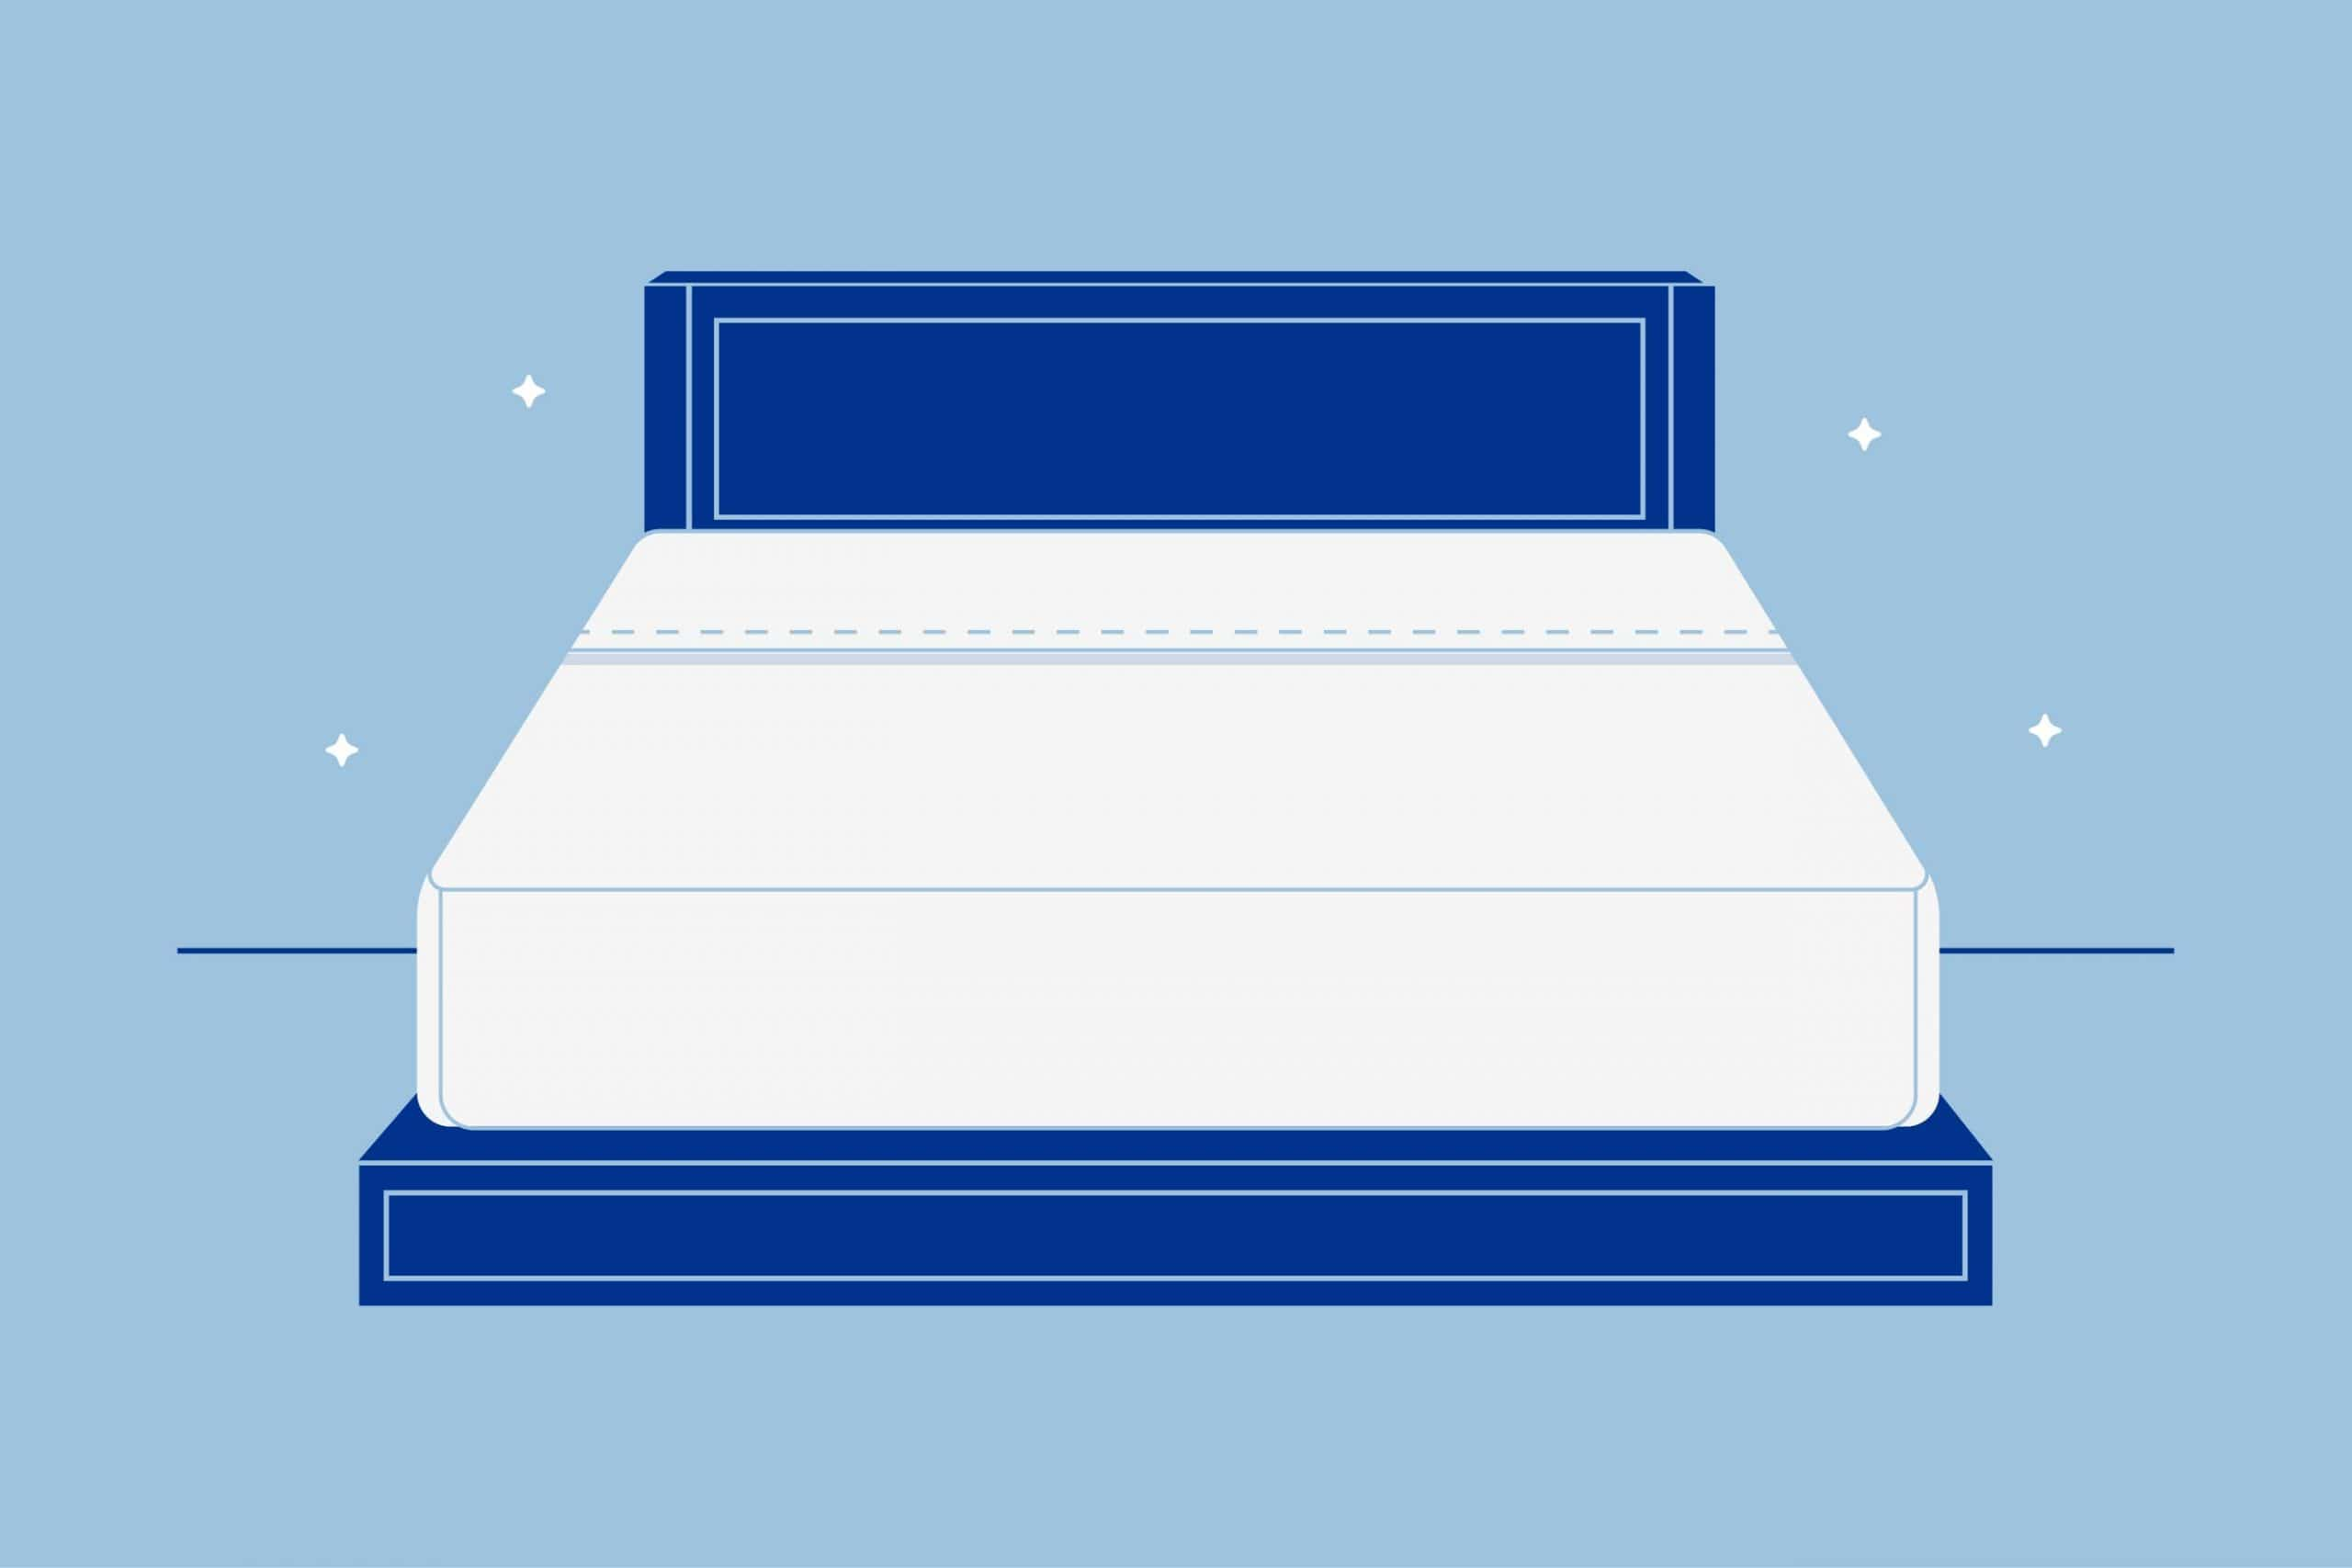 Bed Sheet Sizes and Dimensions Guide